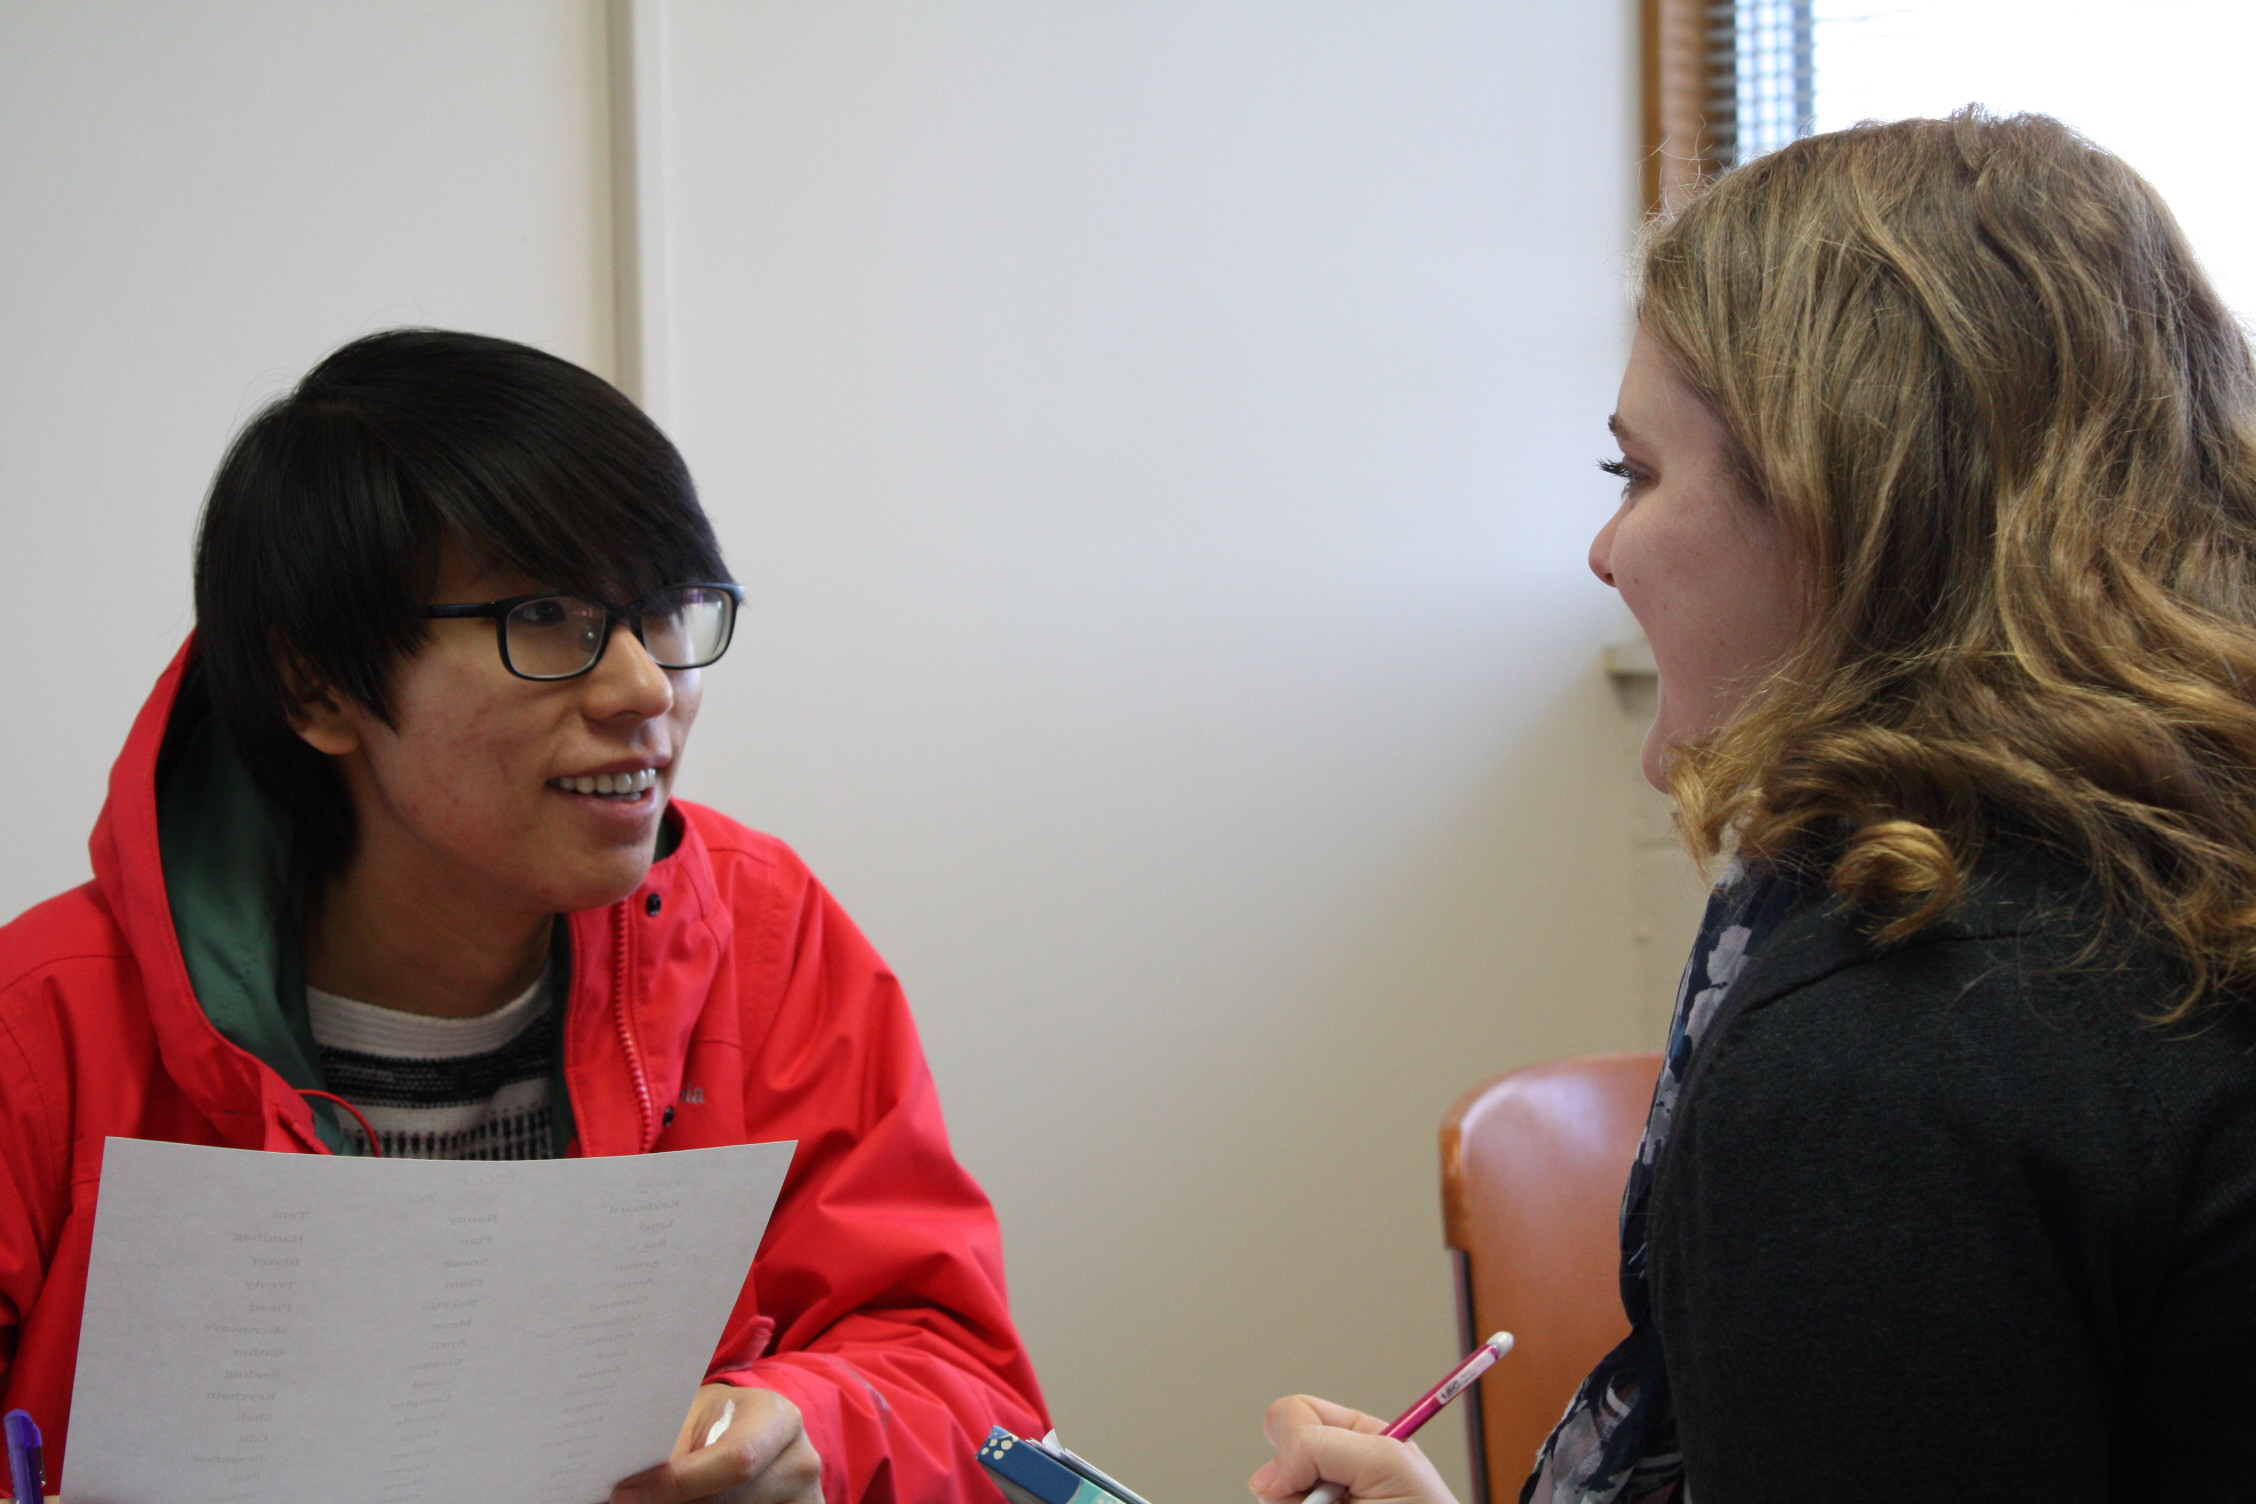 Student clinician working with a client on a voice exercise.